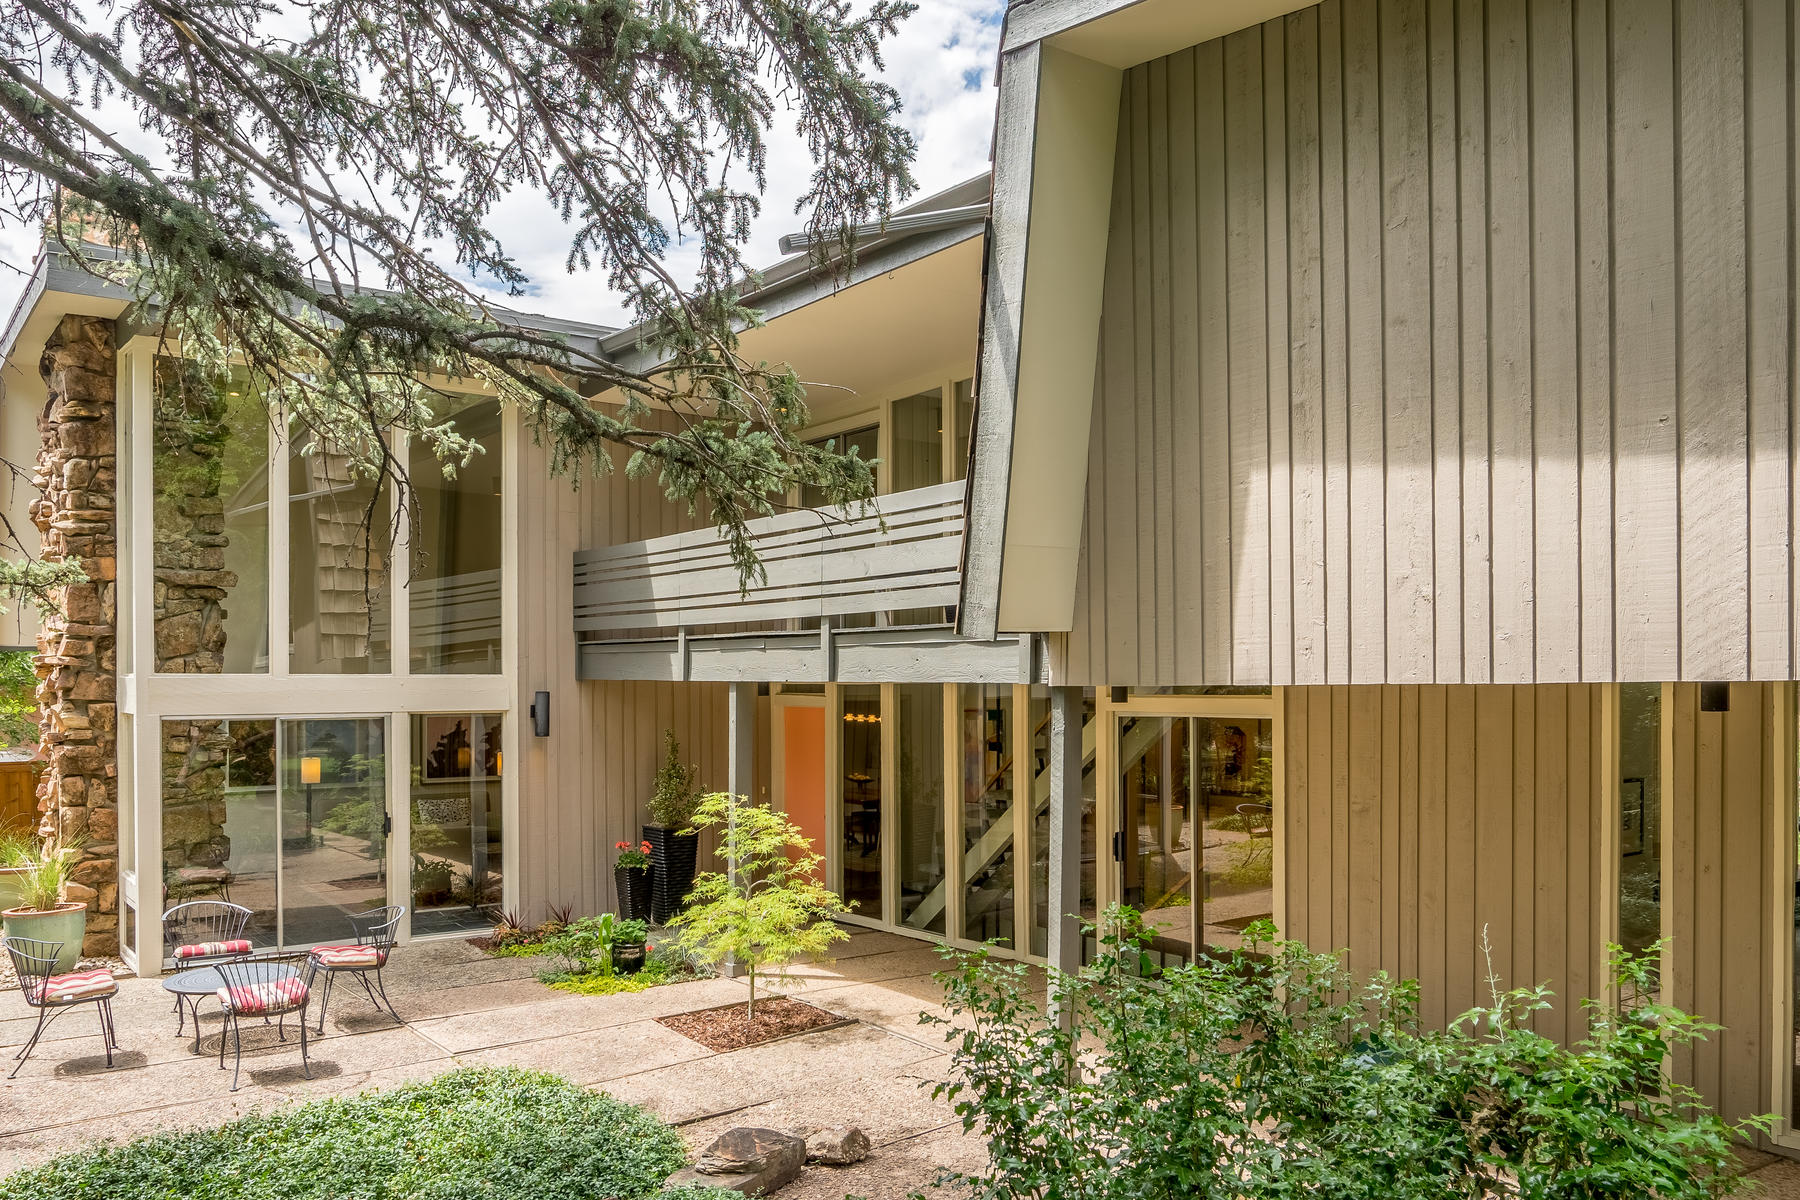 Single Family Home for Active at One Of A kind Mid-Century Modern Masterpiece! 1701 Forest Parkway Denver, Colorado 80220 United States